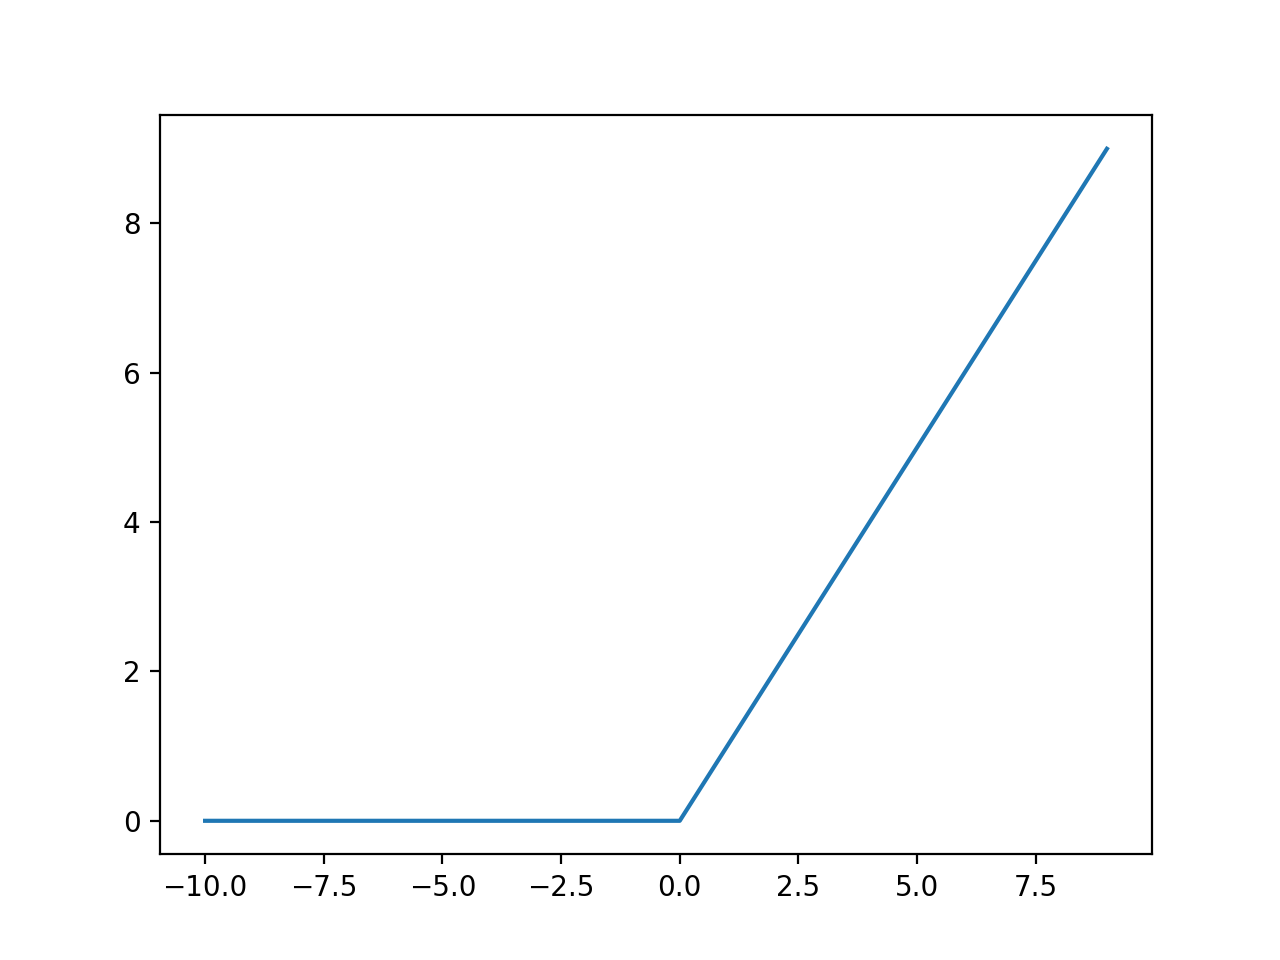 Line Plot of Rectified Linear Activation for Negative and Positive Inputs